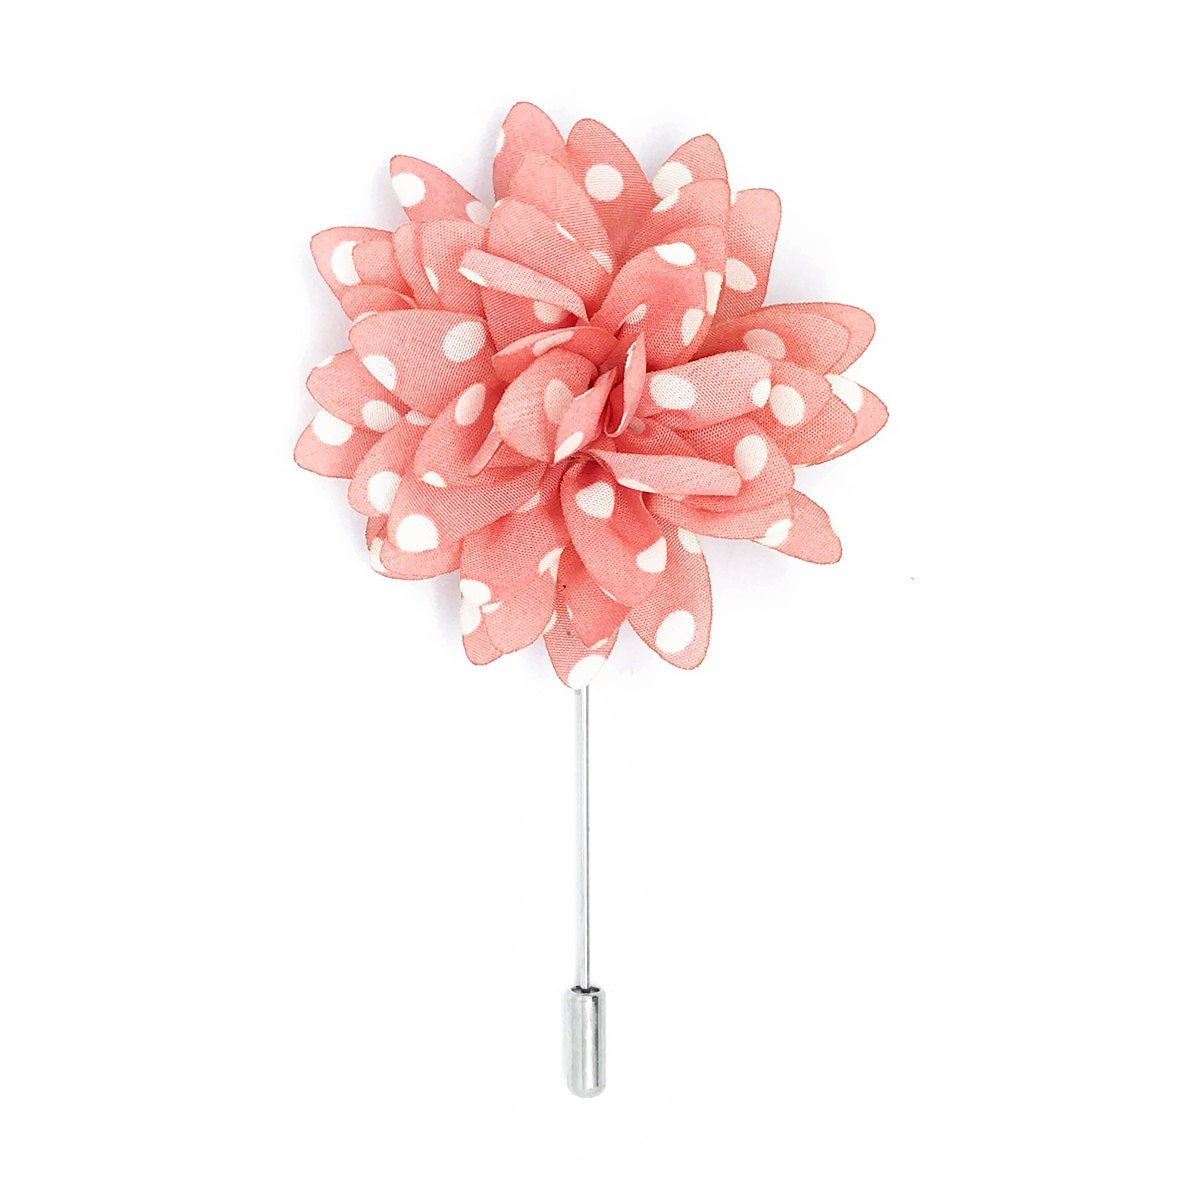 Men s Flower Lapel Pin Pink with White Polka Dots Silk